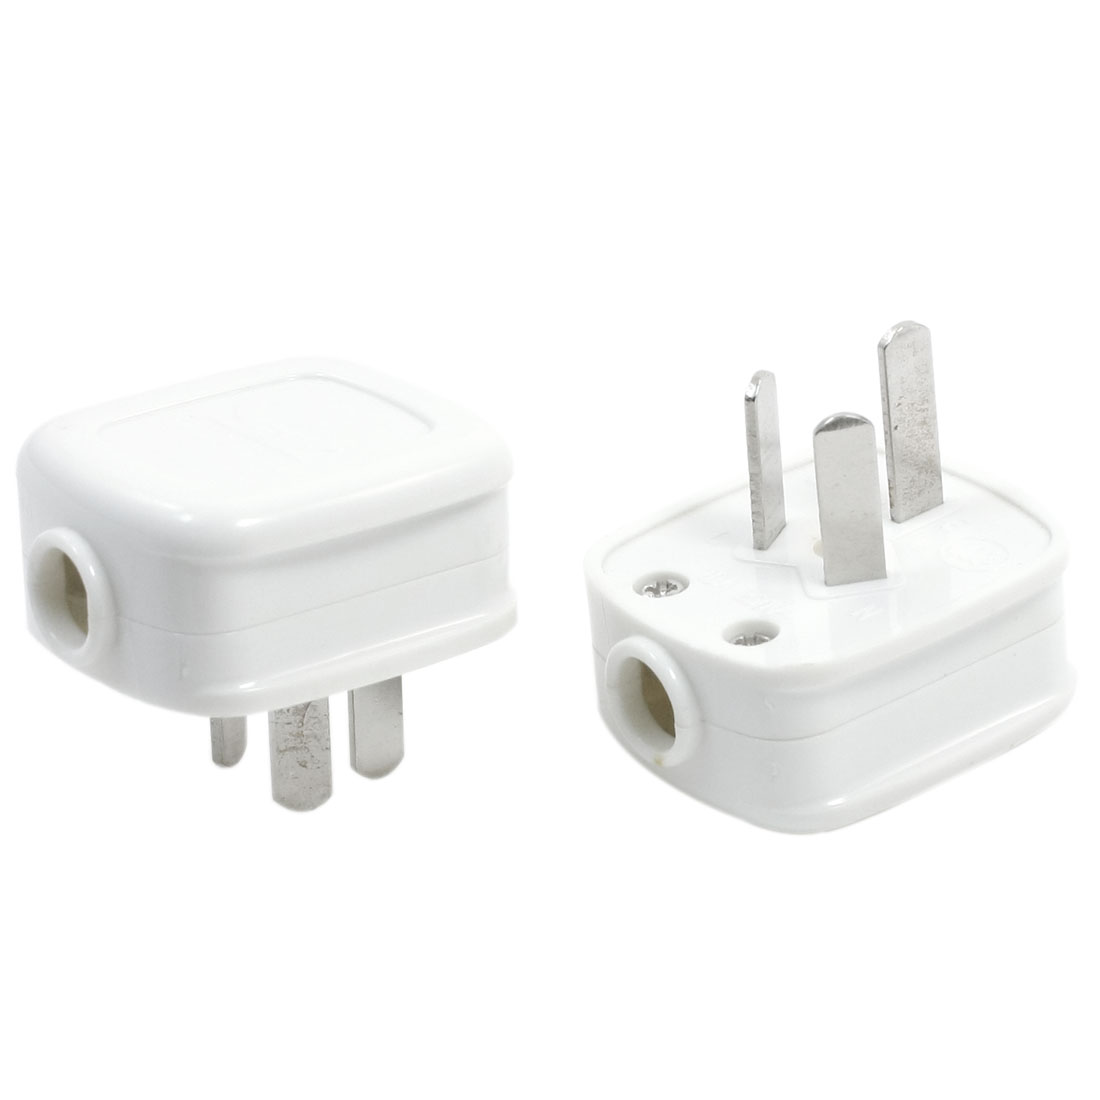 AC 250V 10A AU Plug Earth Grounded 10mm Cable Power Connector Adapter 2pcs